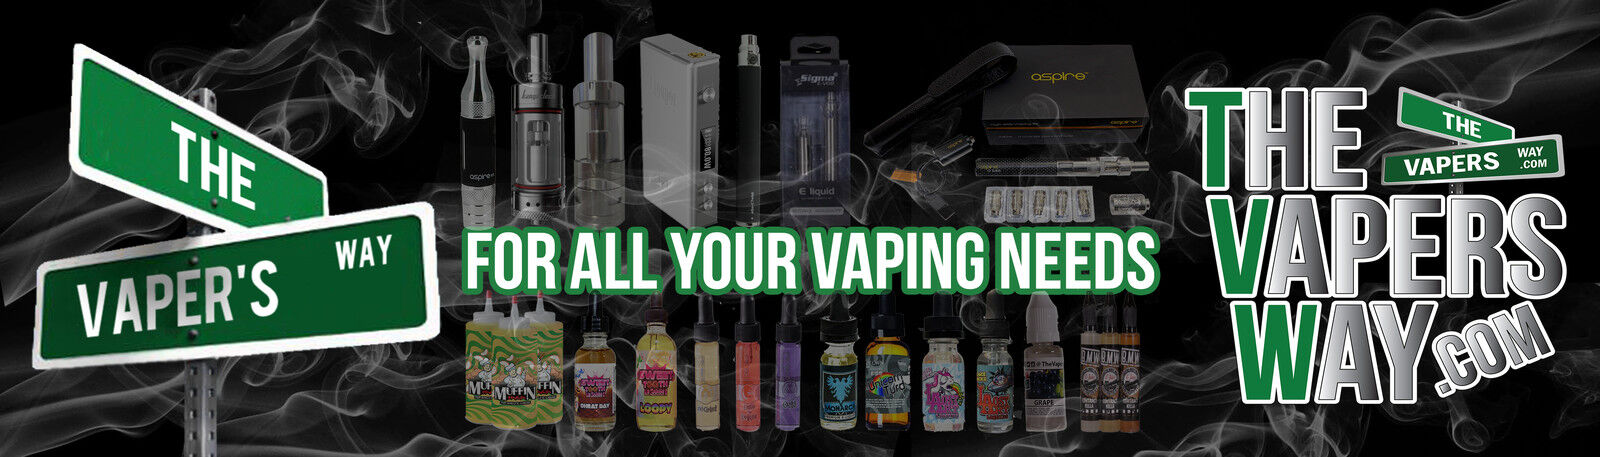 The Vapers Way